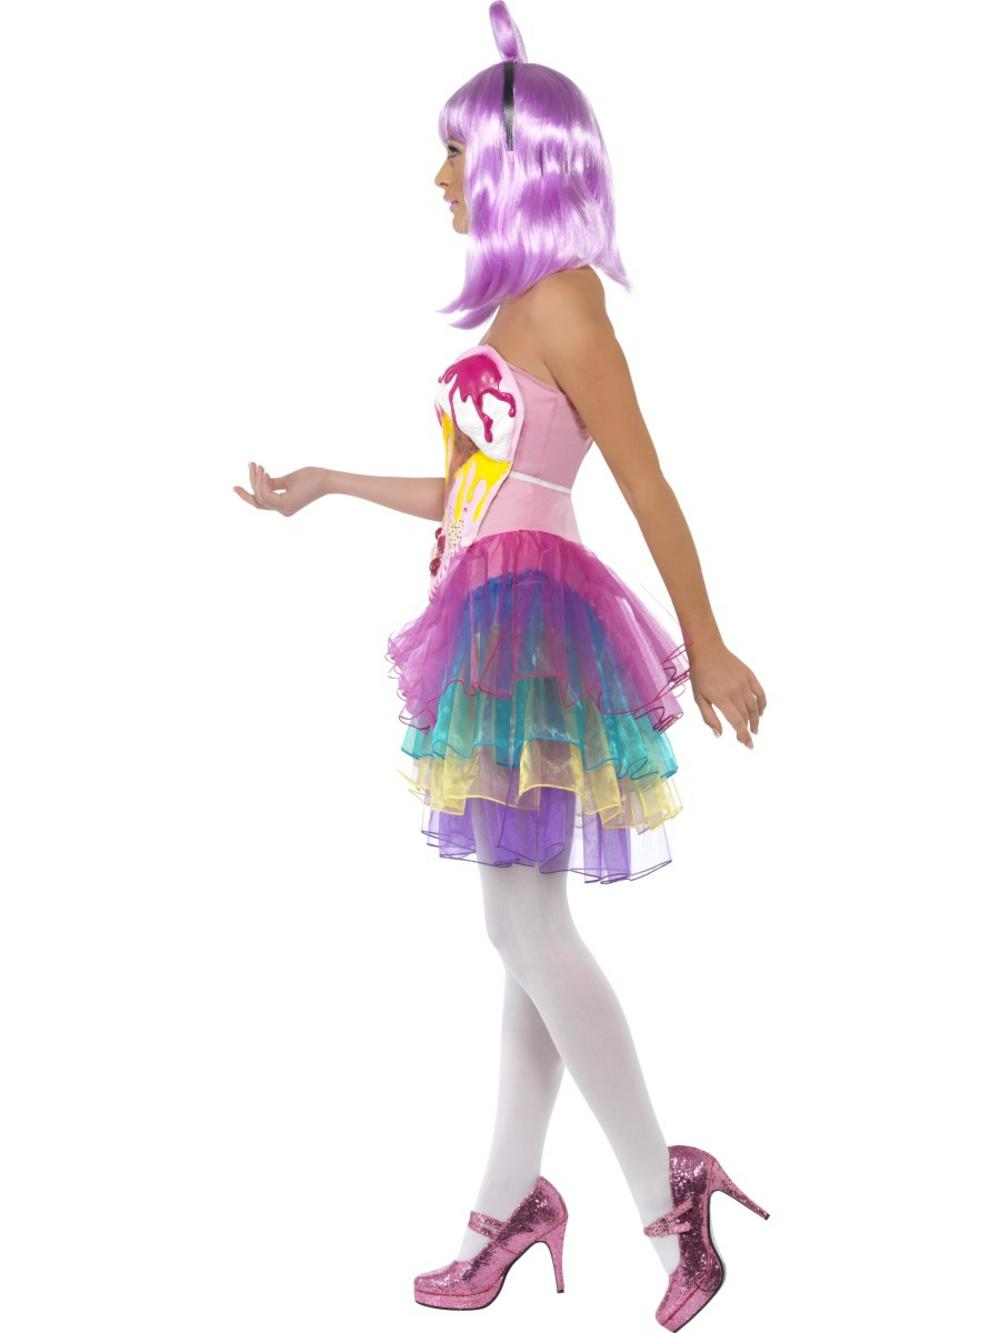 Candy dress costume